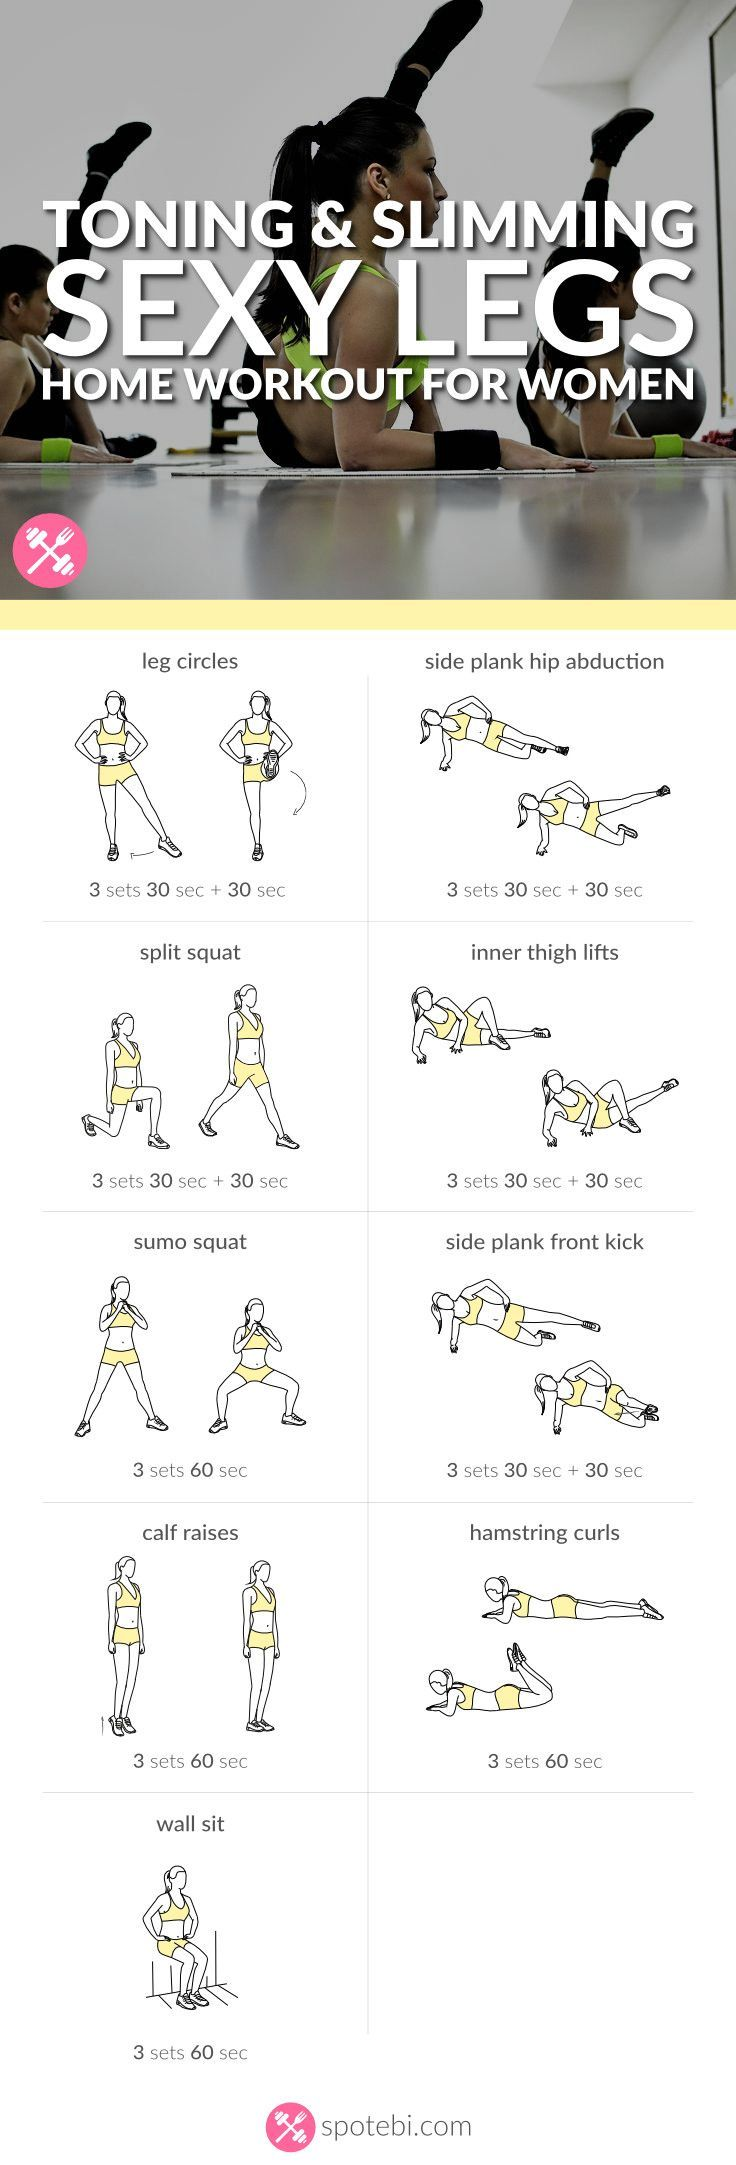 Get lean and strong with this sexy legs workout. 9 toning and slimming leg exercises to work your inner and outer thighs, hips, quads, hamstrings and calves. www.spotebi.com/...